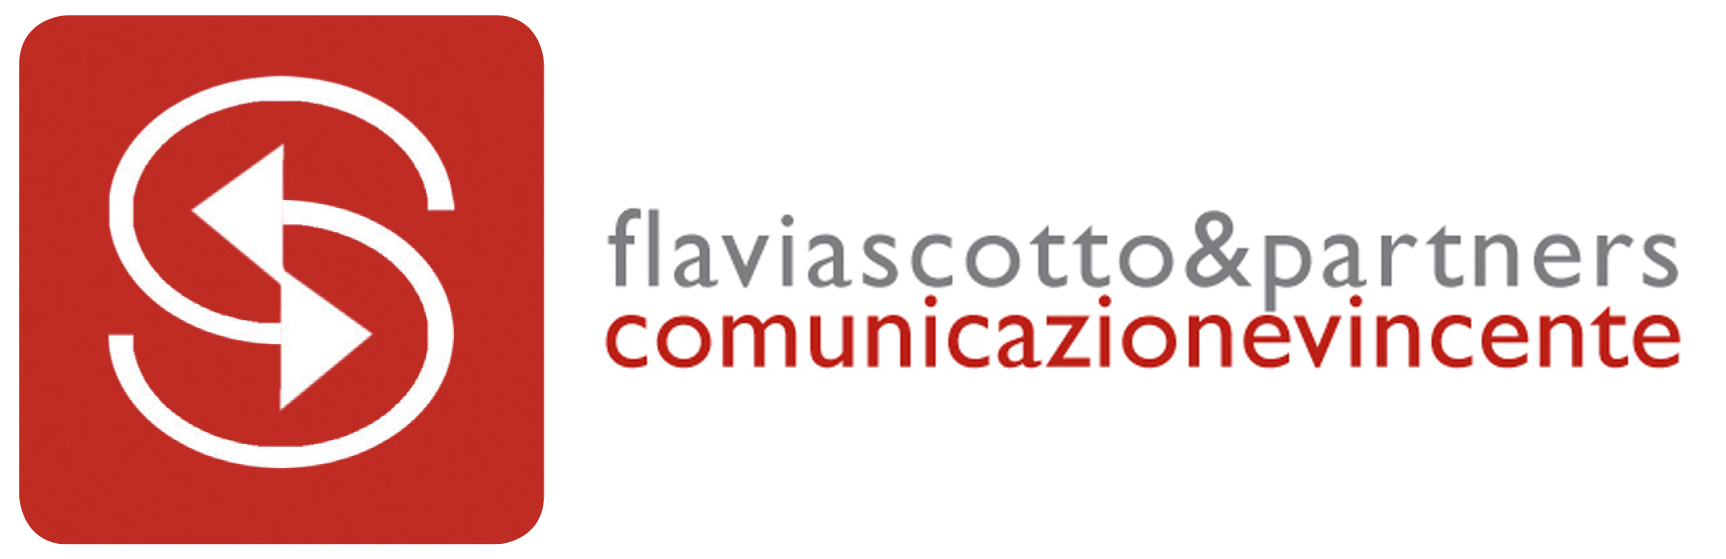 Flavia Scotto & Partners